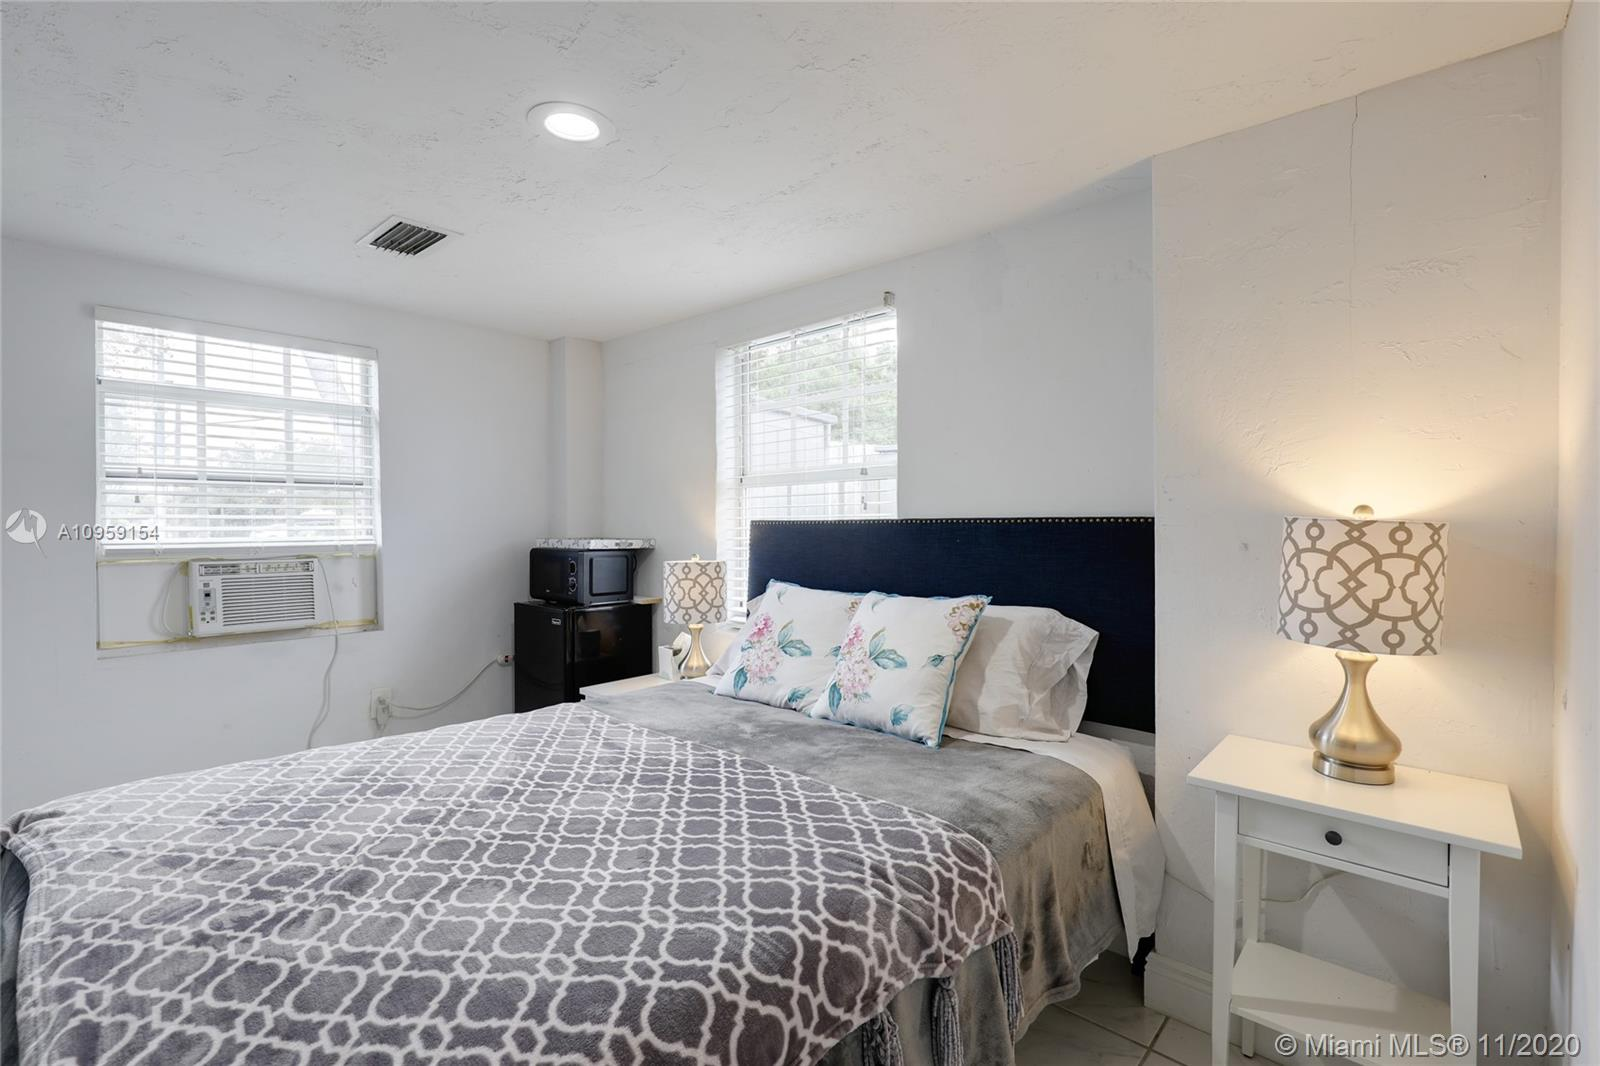 1825 NE 171st St, North Miami Beach, Florida 33162, 4 Bedrooms Bedrooms, ,2 BathroomsBathrooms,Residential,For Sale,1825 NE 171st St,A10959154